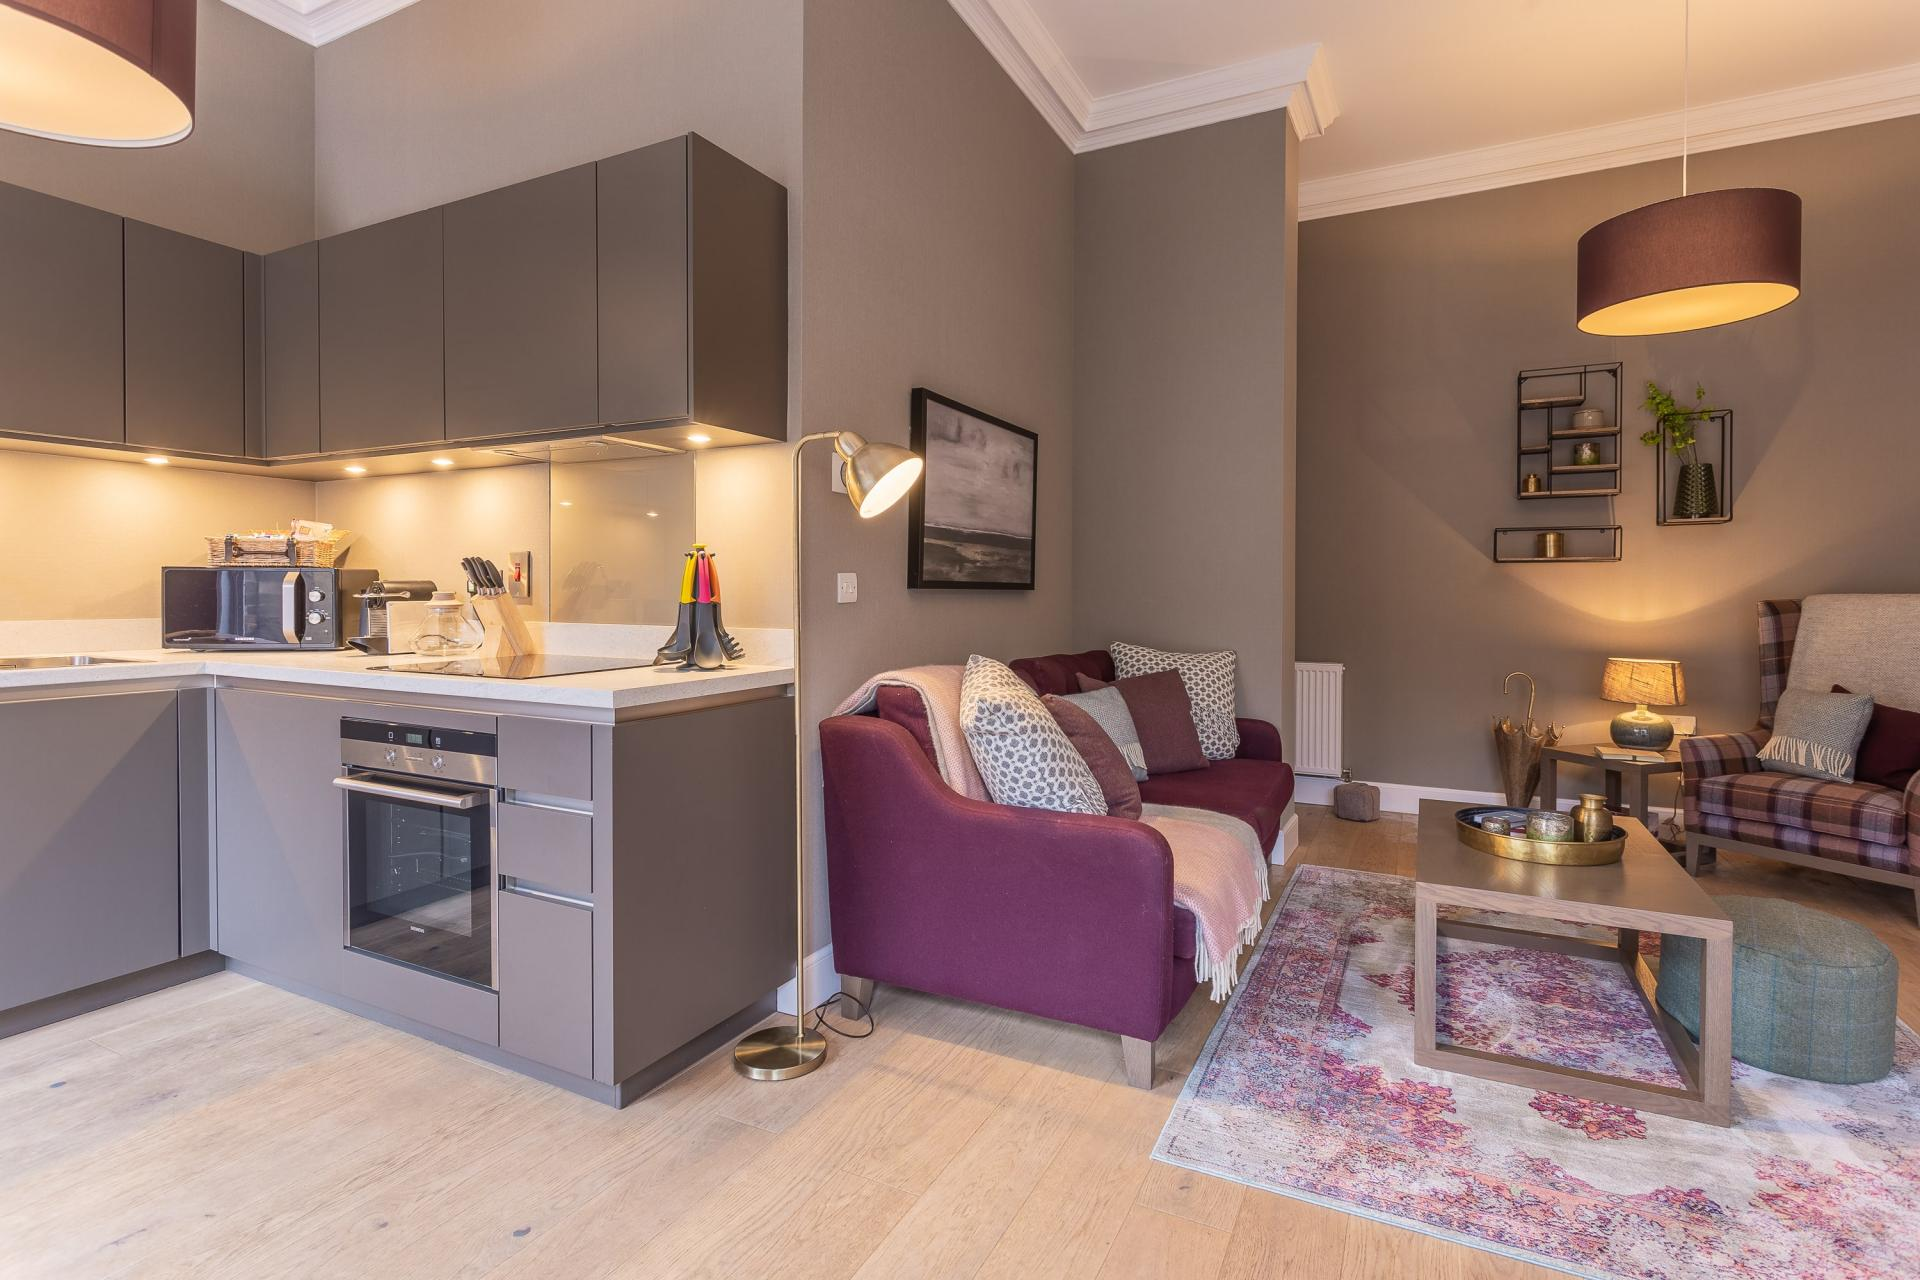 Kitchen/living area at No.1 Apartments - George IV Bridge Apartments - Citybase Apartments